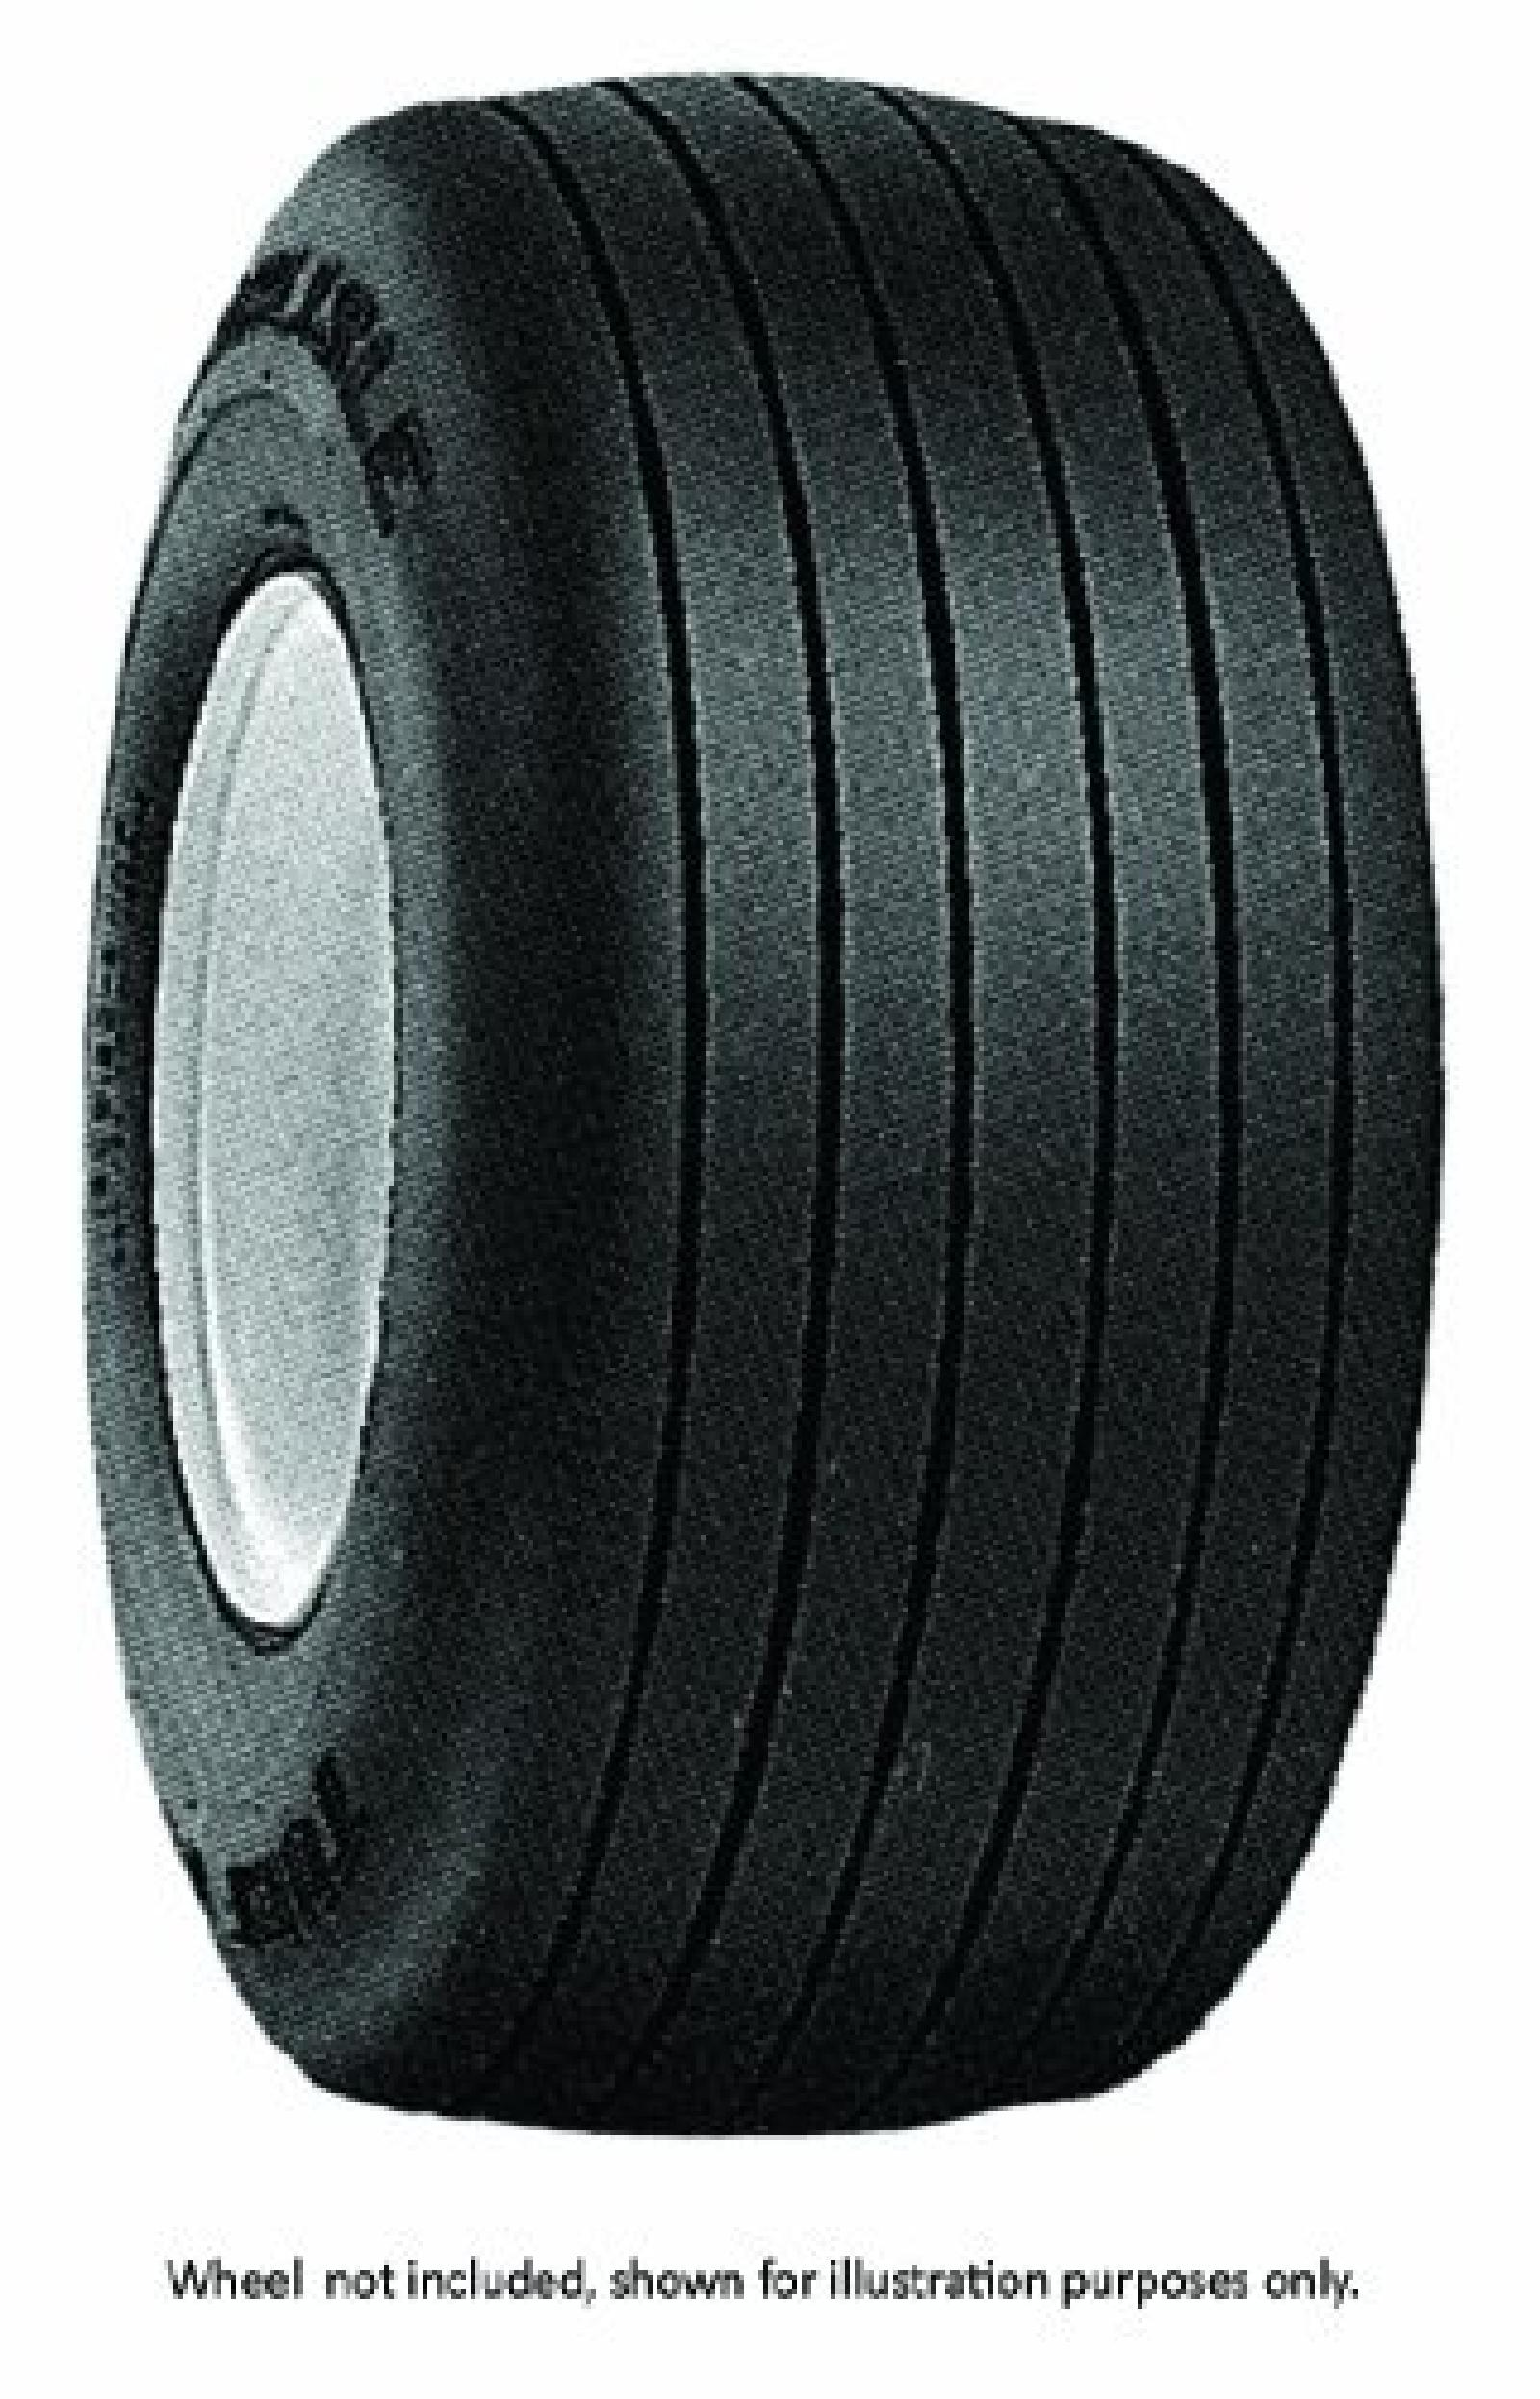 CARLISLE TIRE 13X500 6 4P part# 70-315 by Oregon